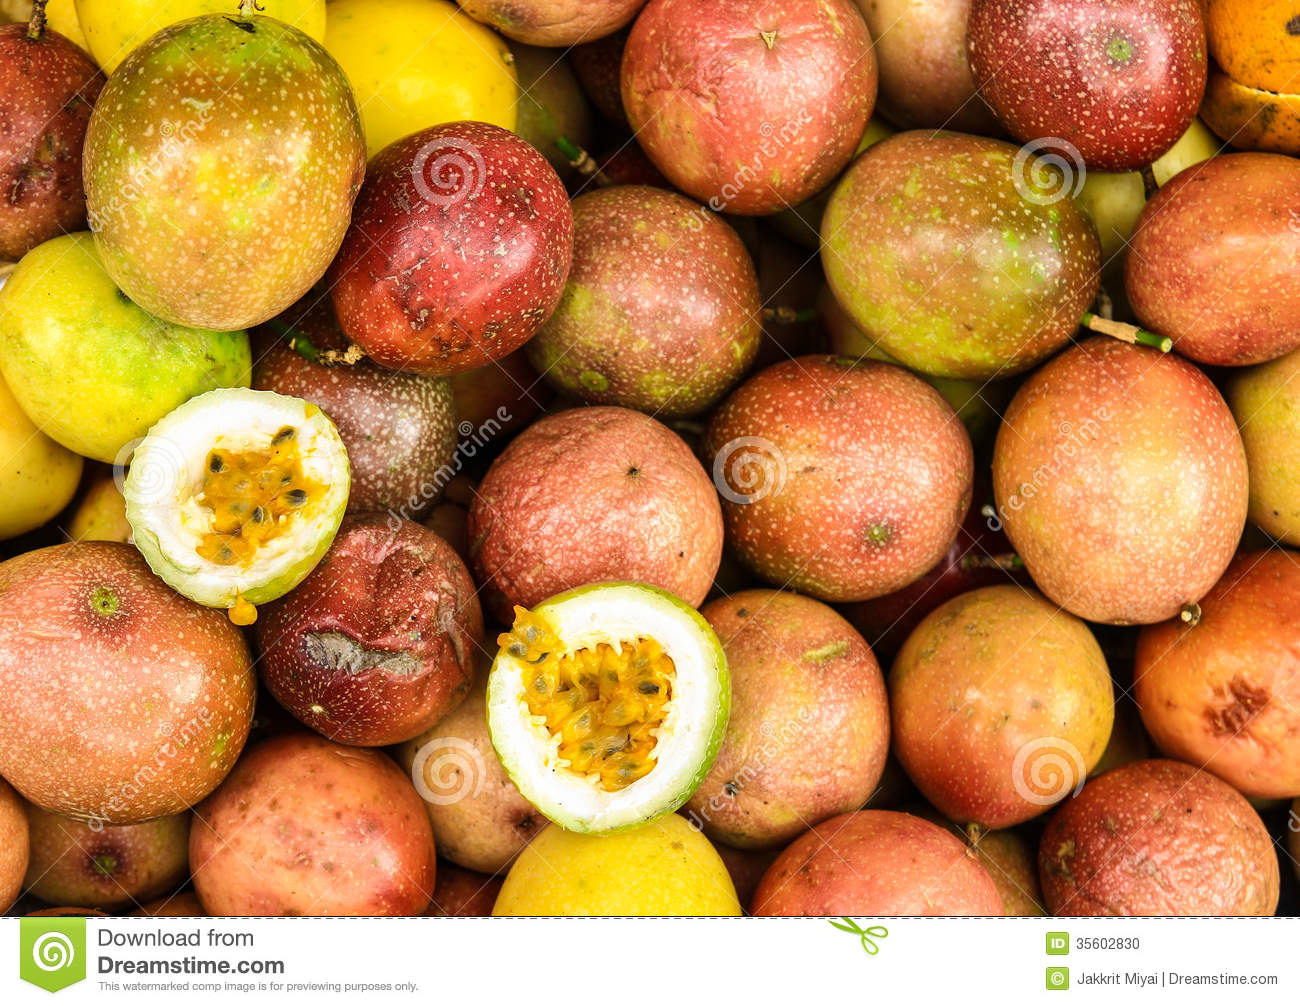 The Bali S Passion Fruits Stock Photo Image Of Core 35602830